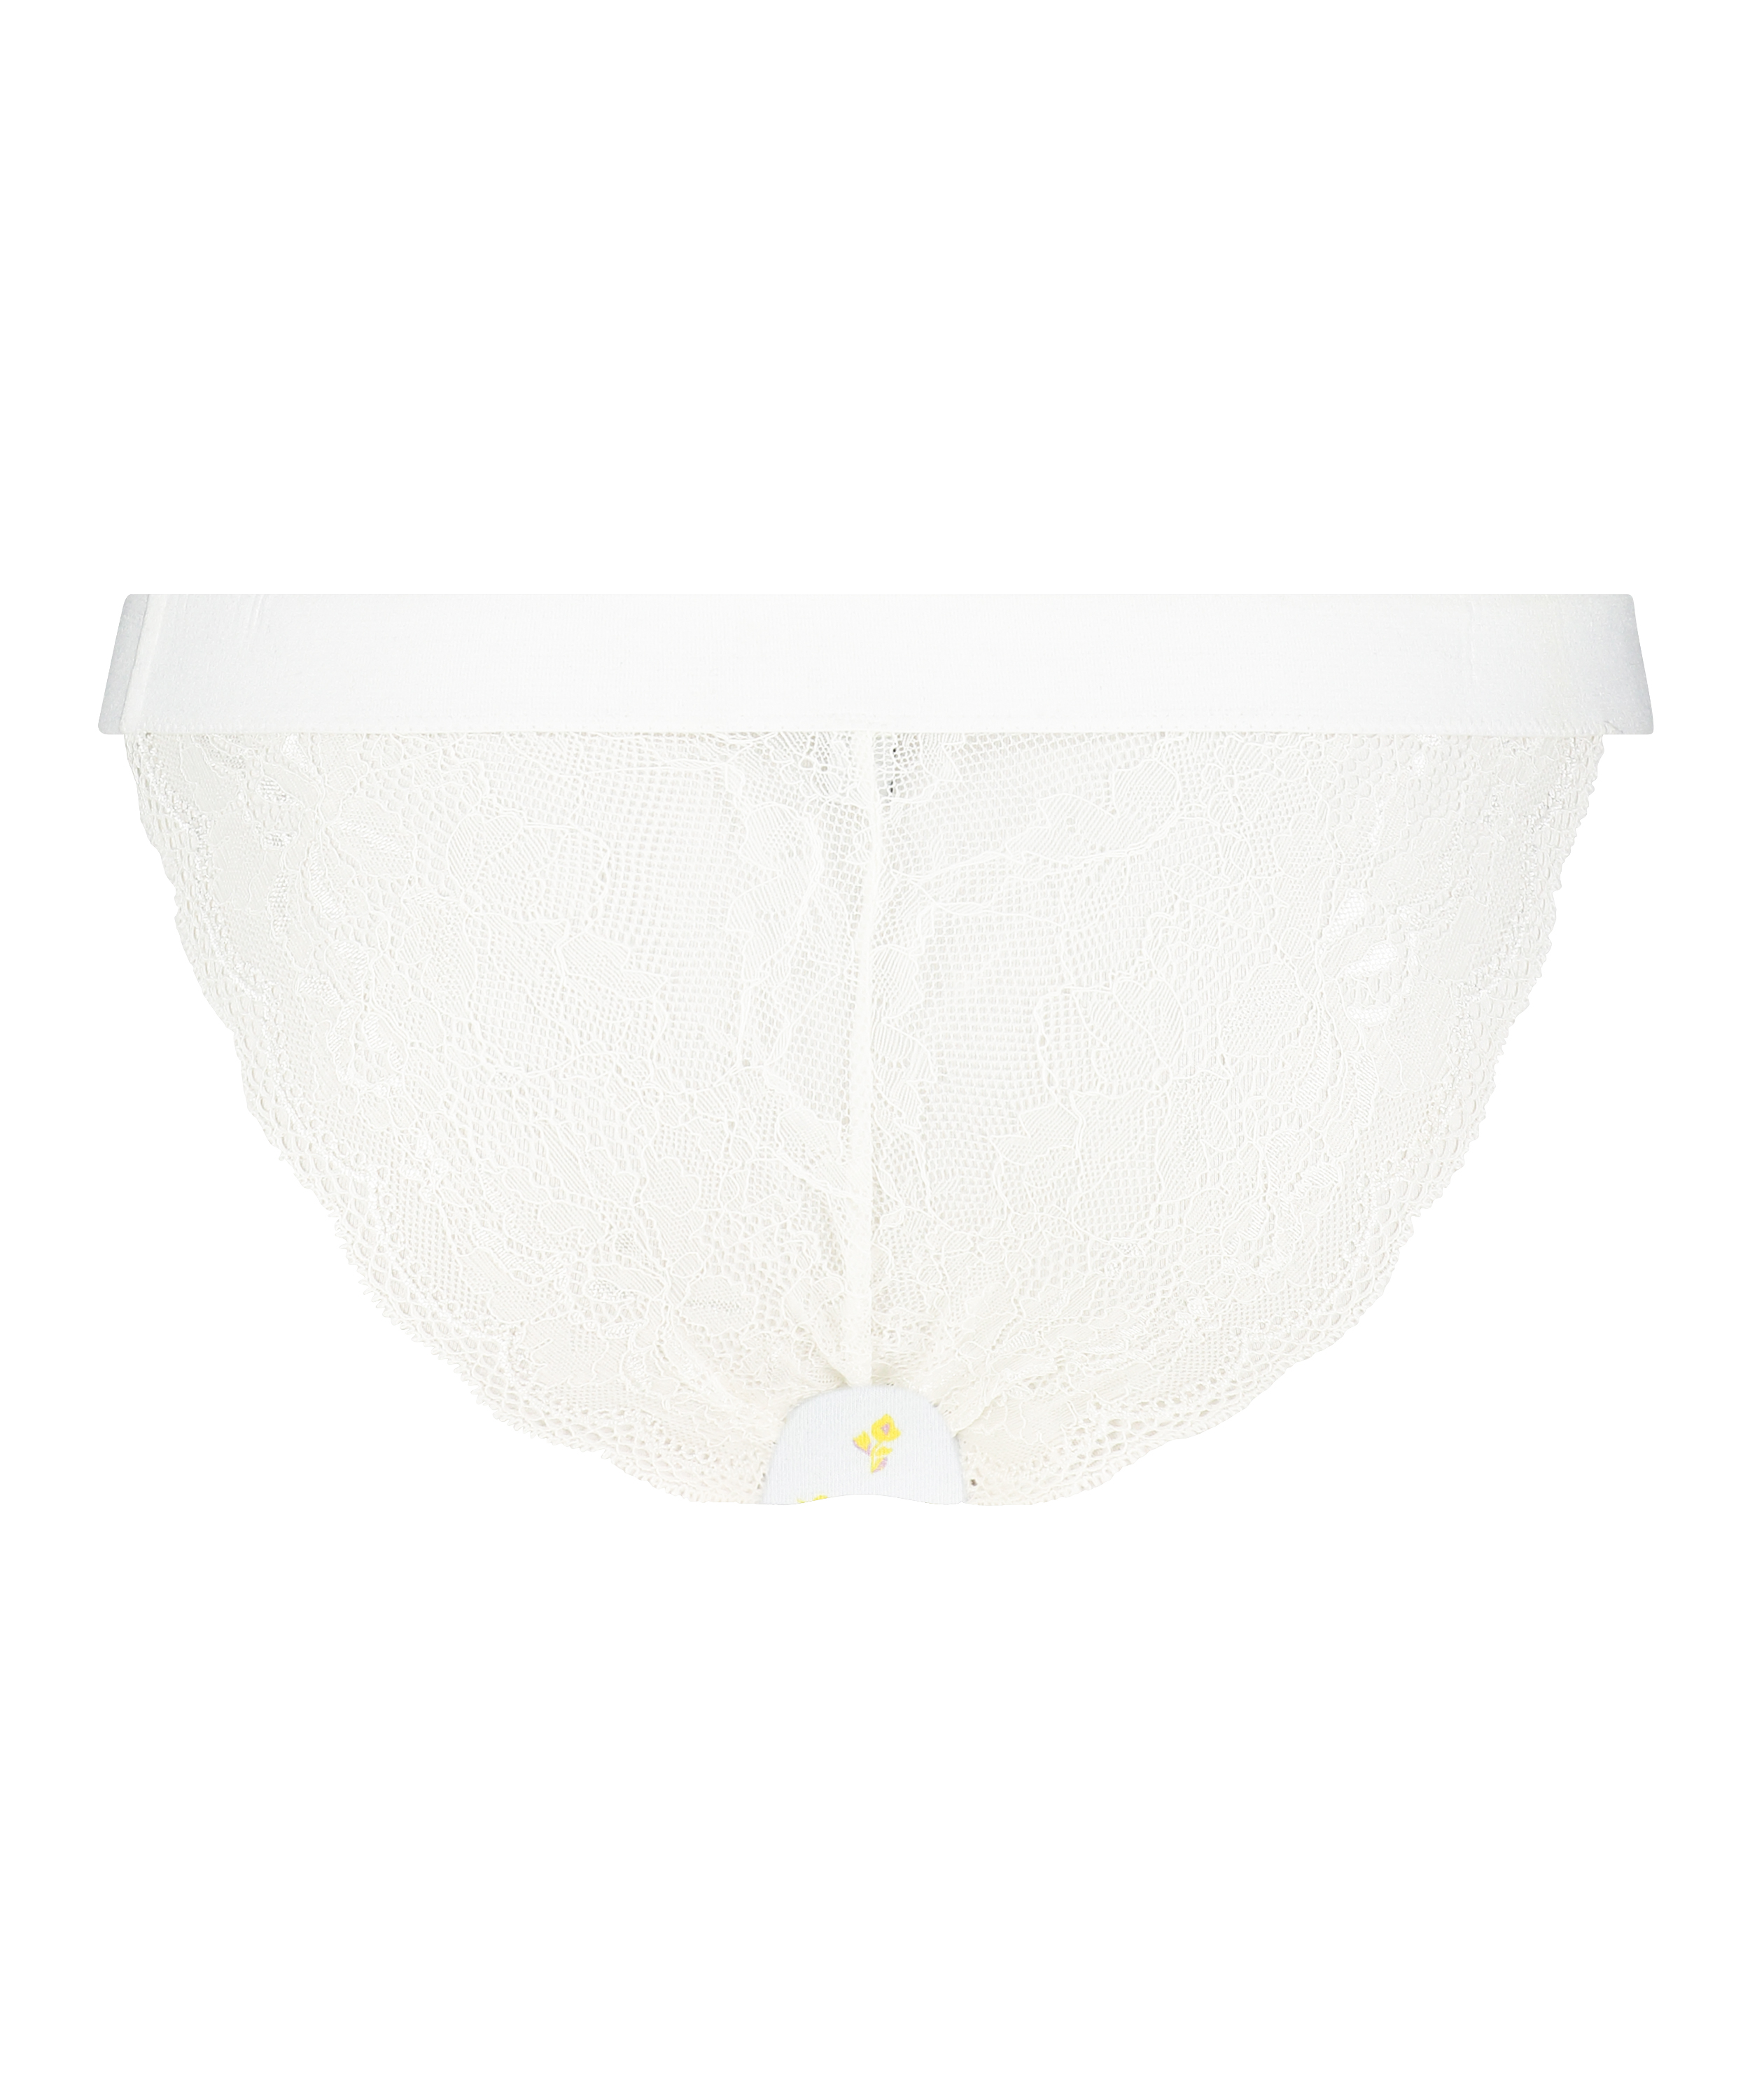 Glo Up Knickers, White, main